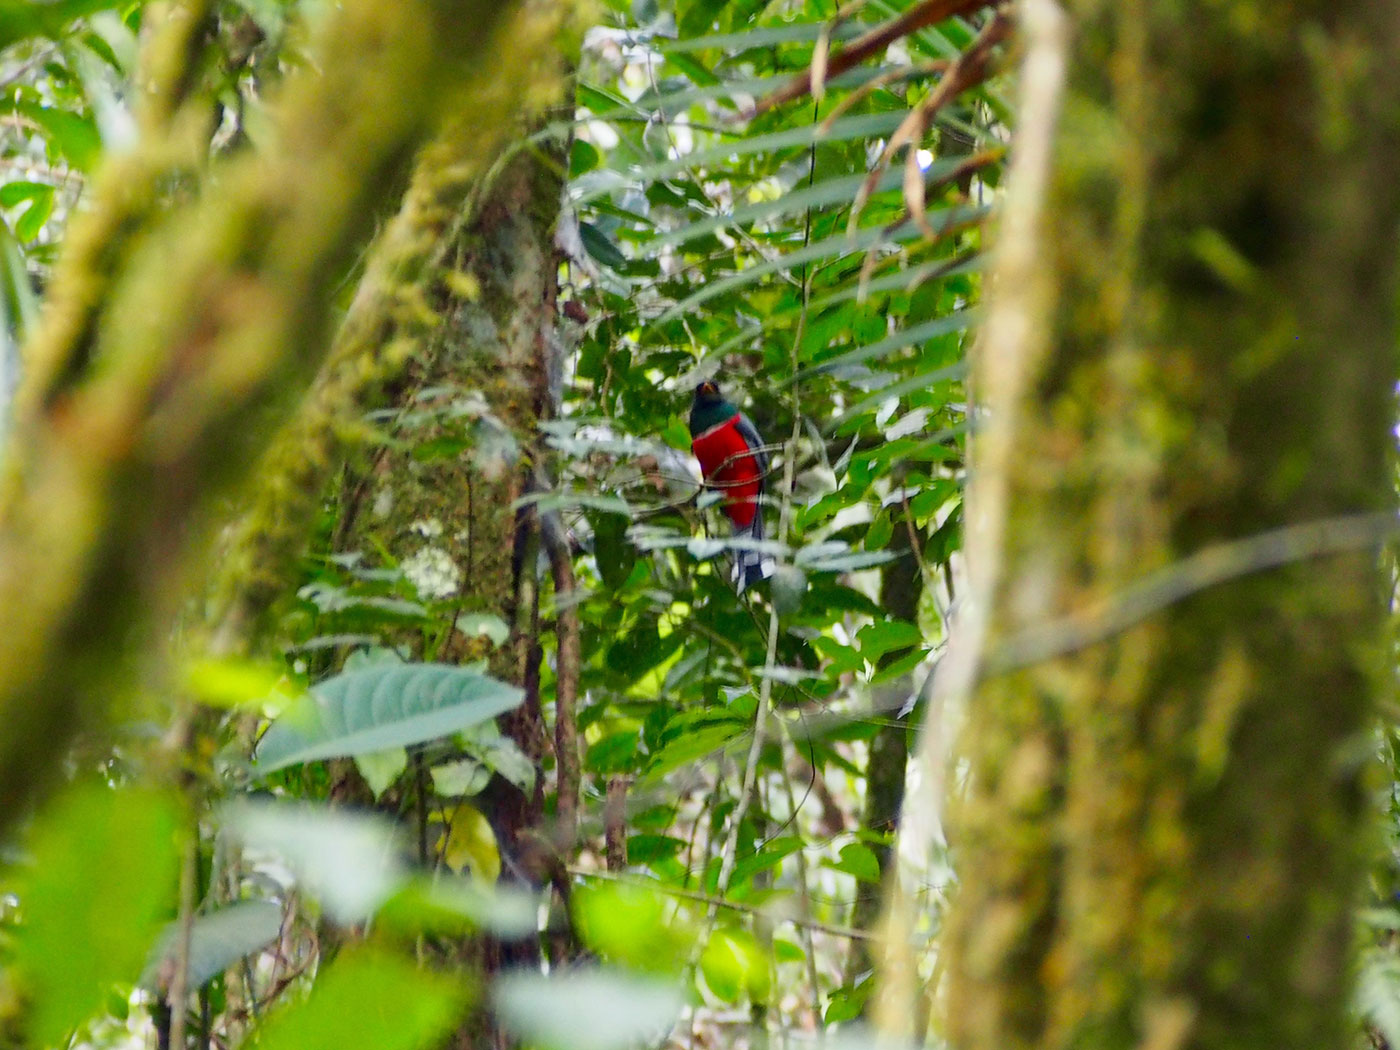 striking bird in a dense jungle